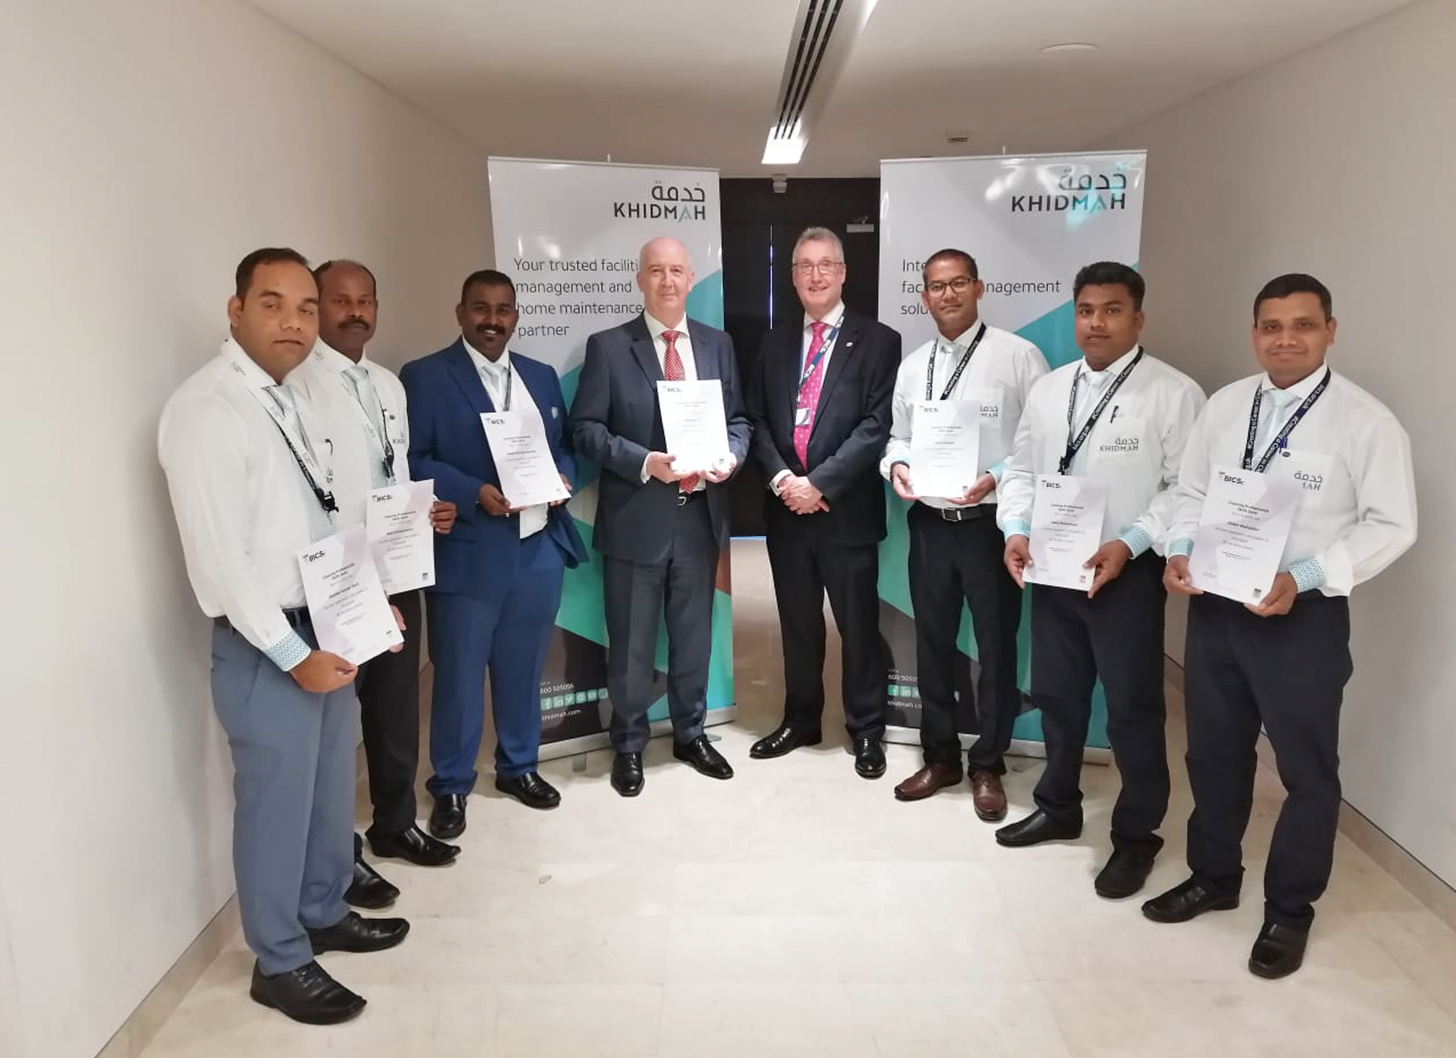 Khidmah Accredited for Soft Facilities Management Services